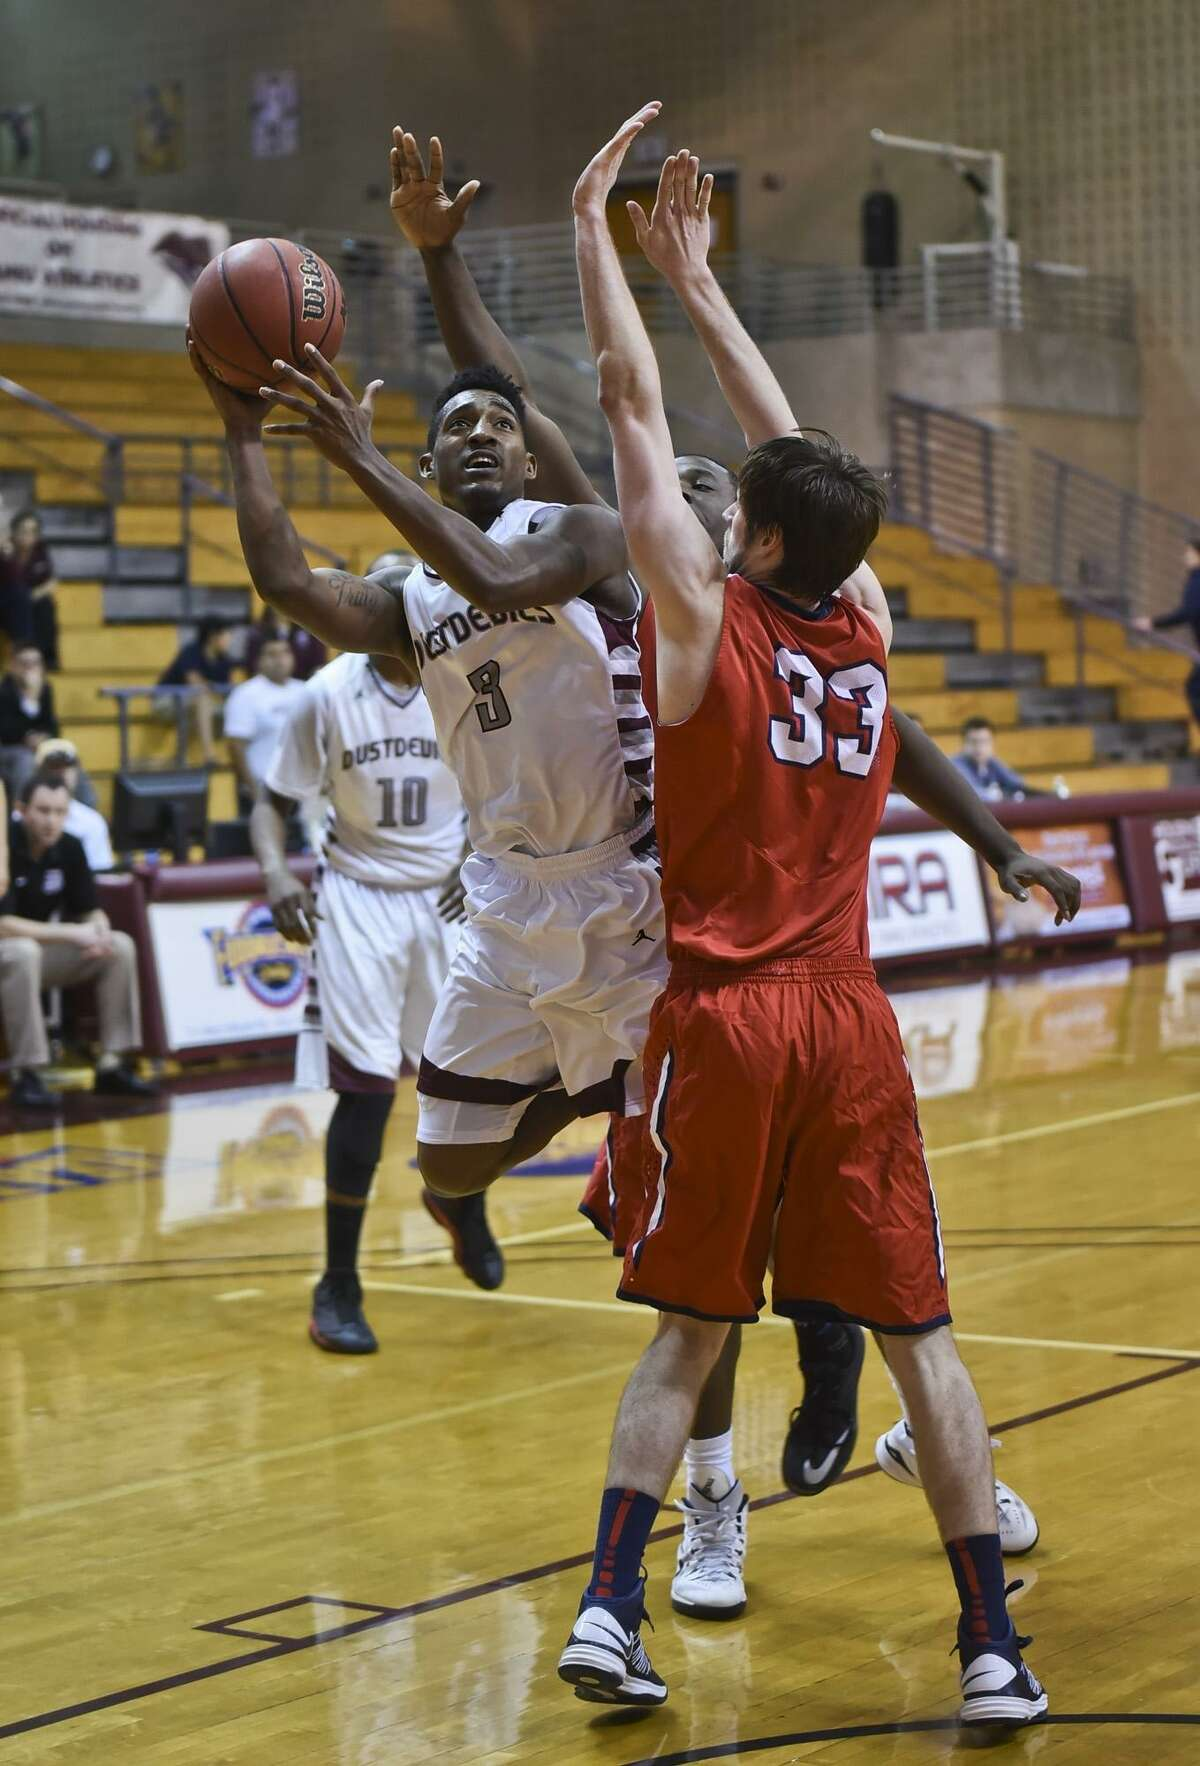 Anthony Alston averaged 11.5 points in 57 games over two seasons with the Dustdevils.